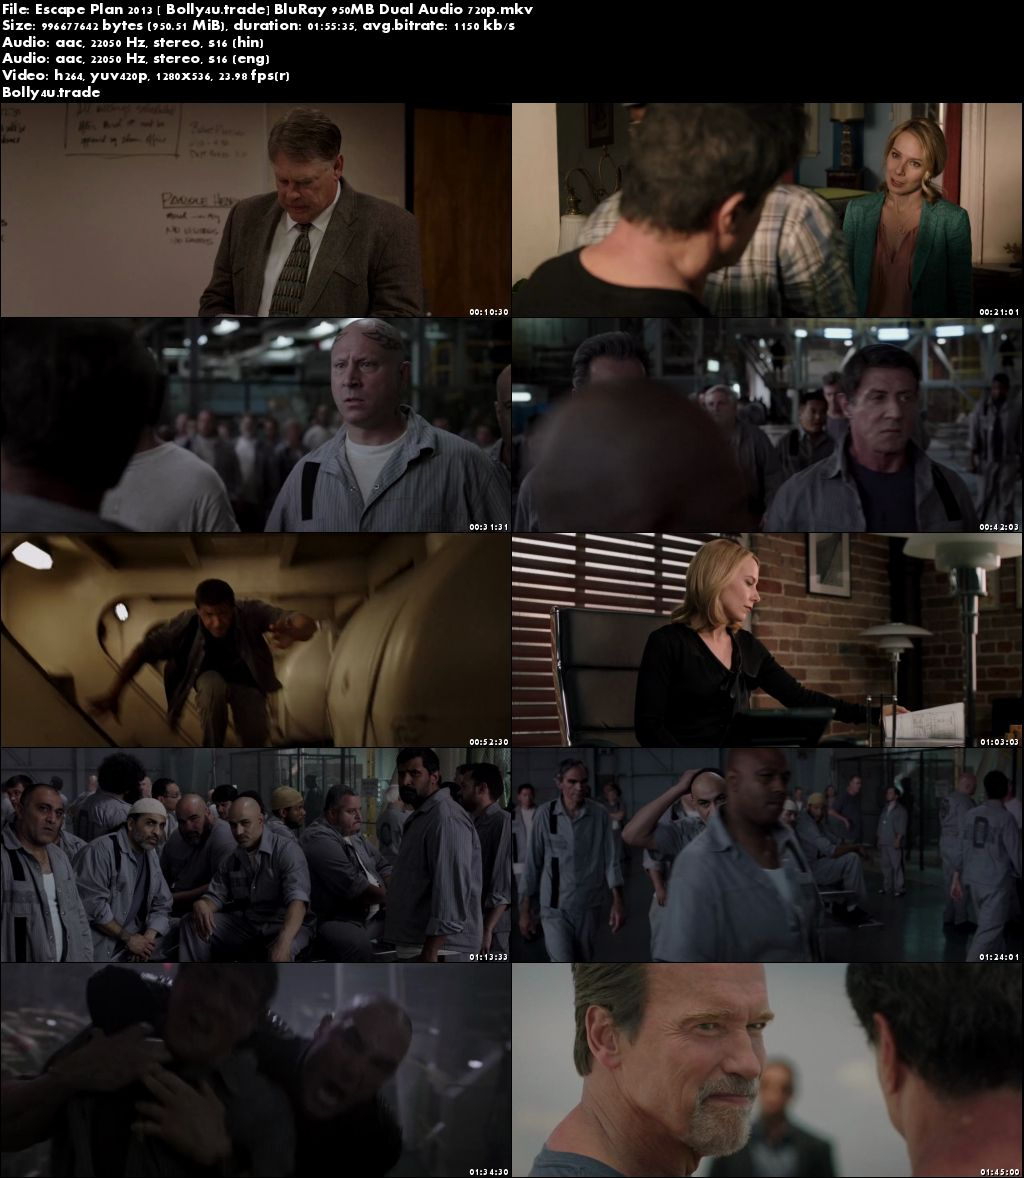 Escape Plan 2013 BluRay 950MB Hindi Dubbed Dual Audio 720p Download